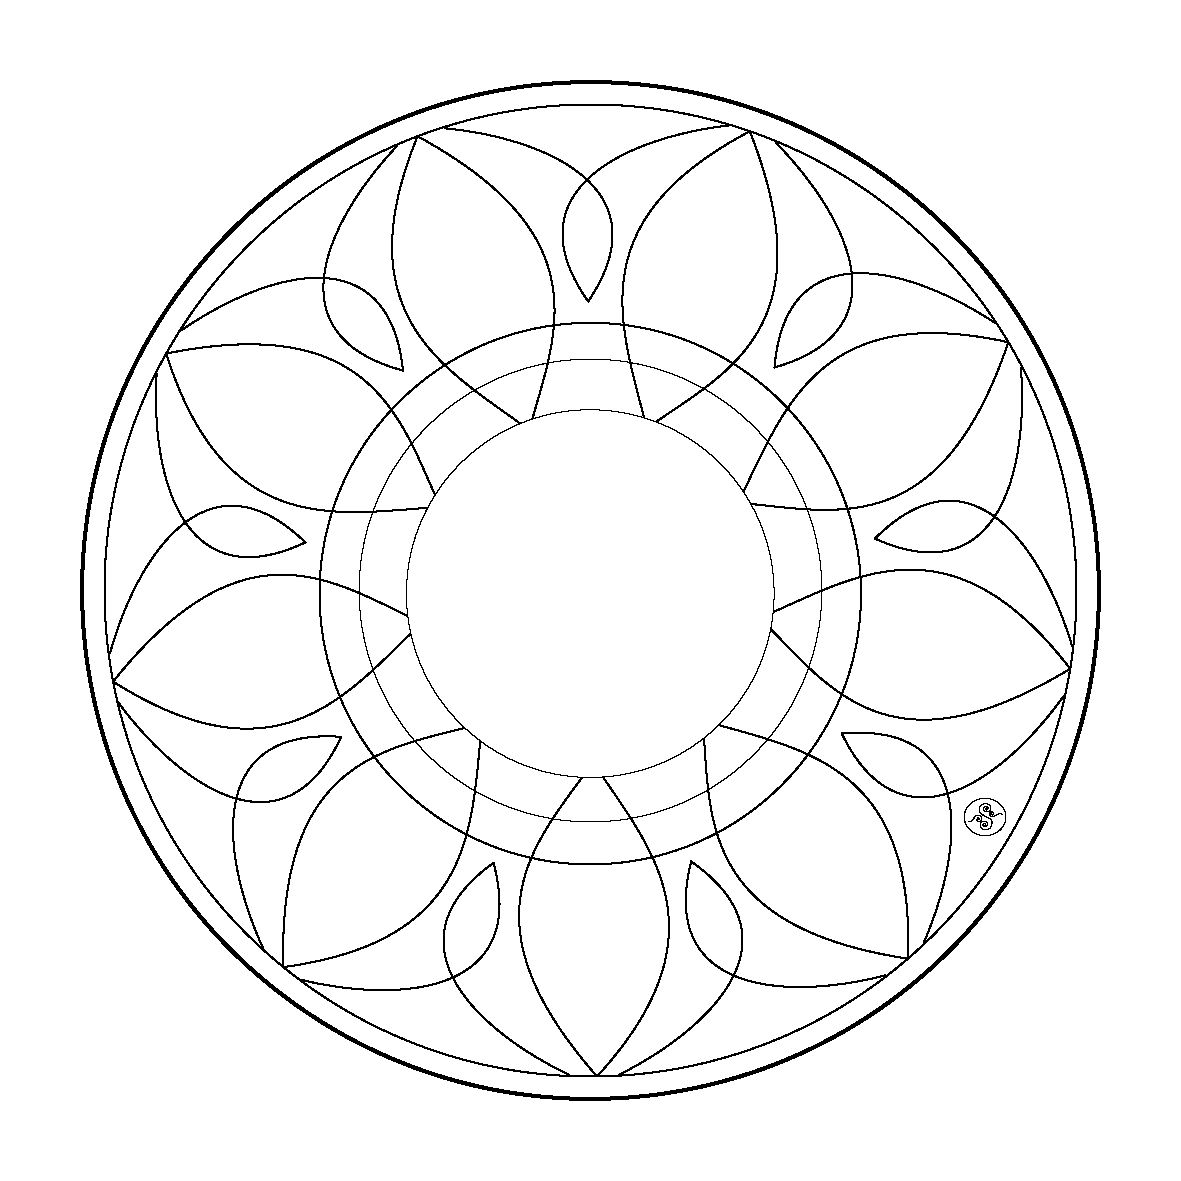 Mandala Coloring pages FREE coloring